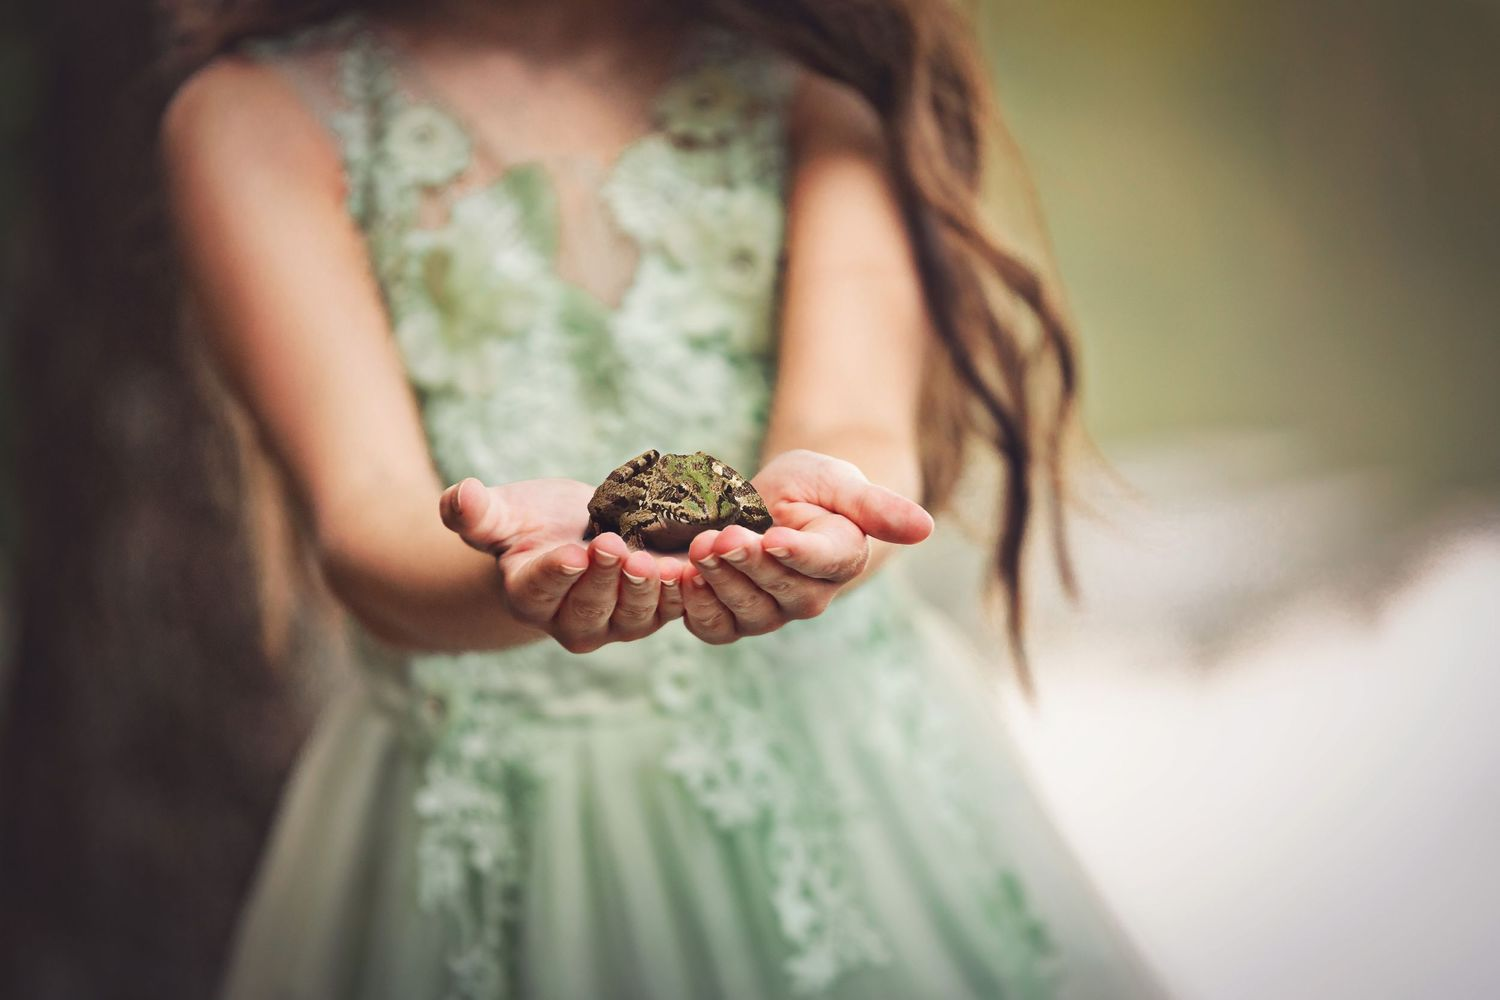 frog princess toad imagination photography mc